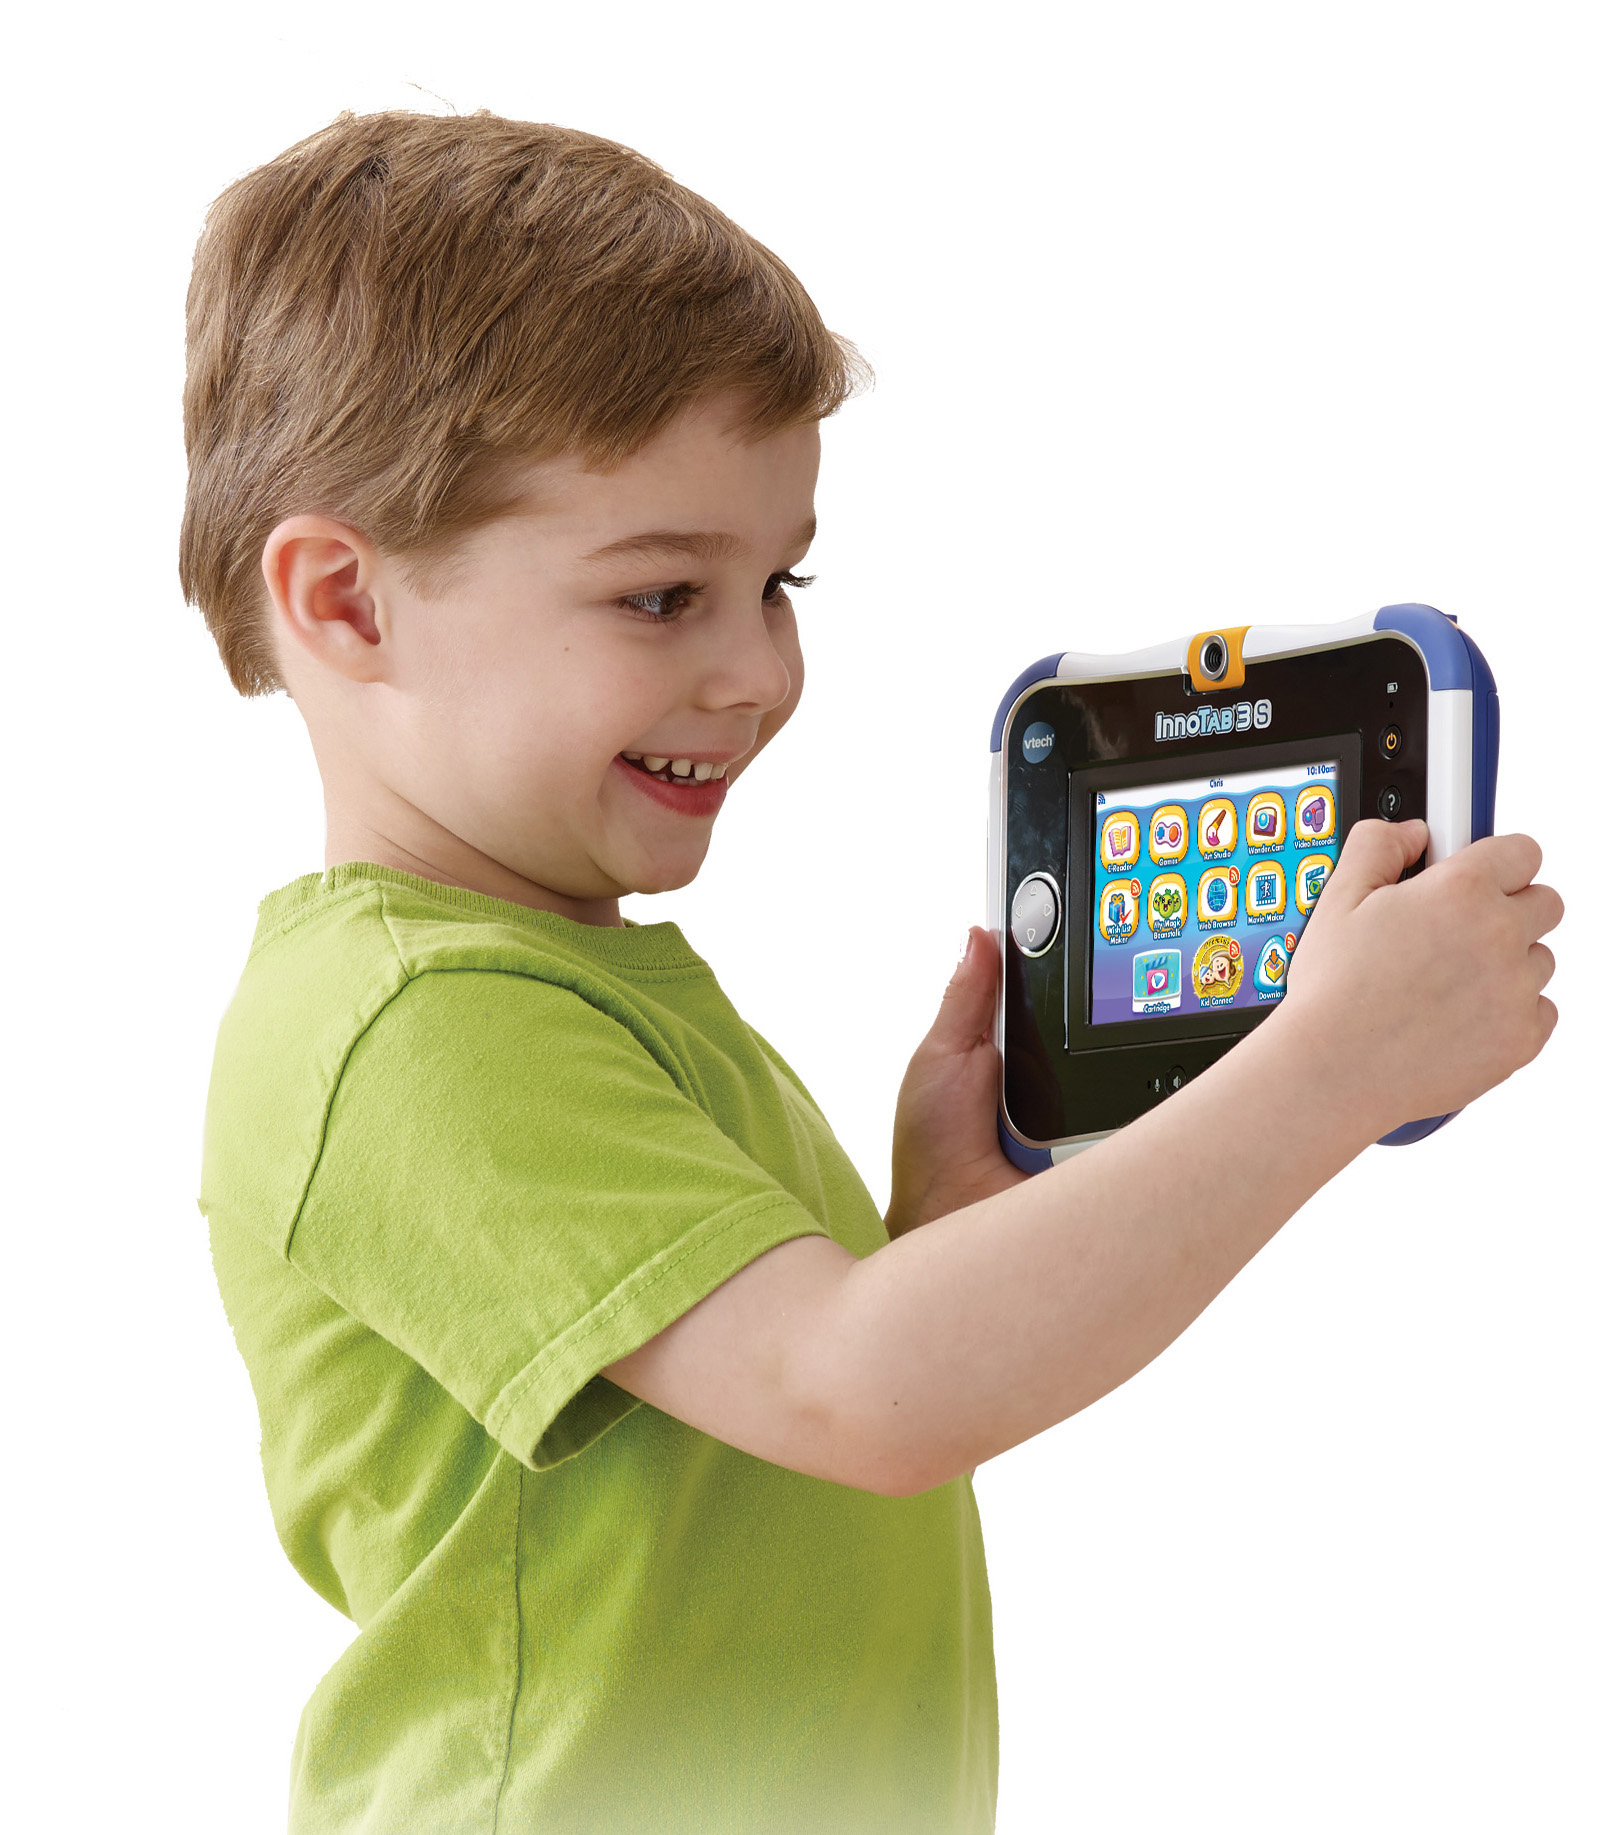 VTech®'s value-packed 4th generation children's learning tablet InnoTab® 3S Plus now available